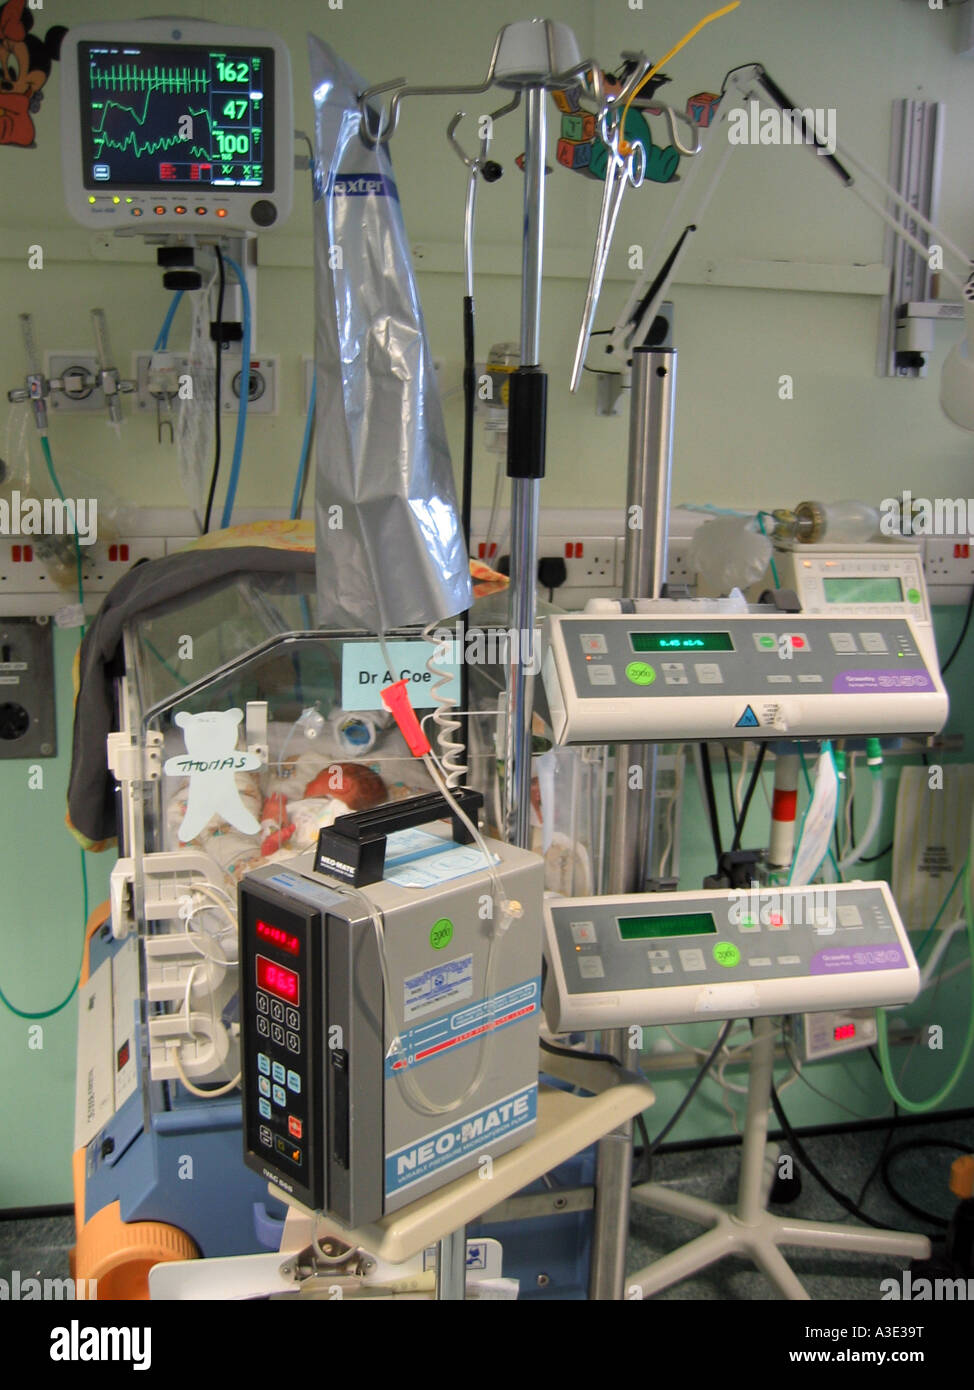 intensive care equipment and incubator in a neonatal unit with a